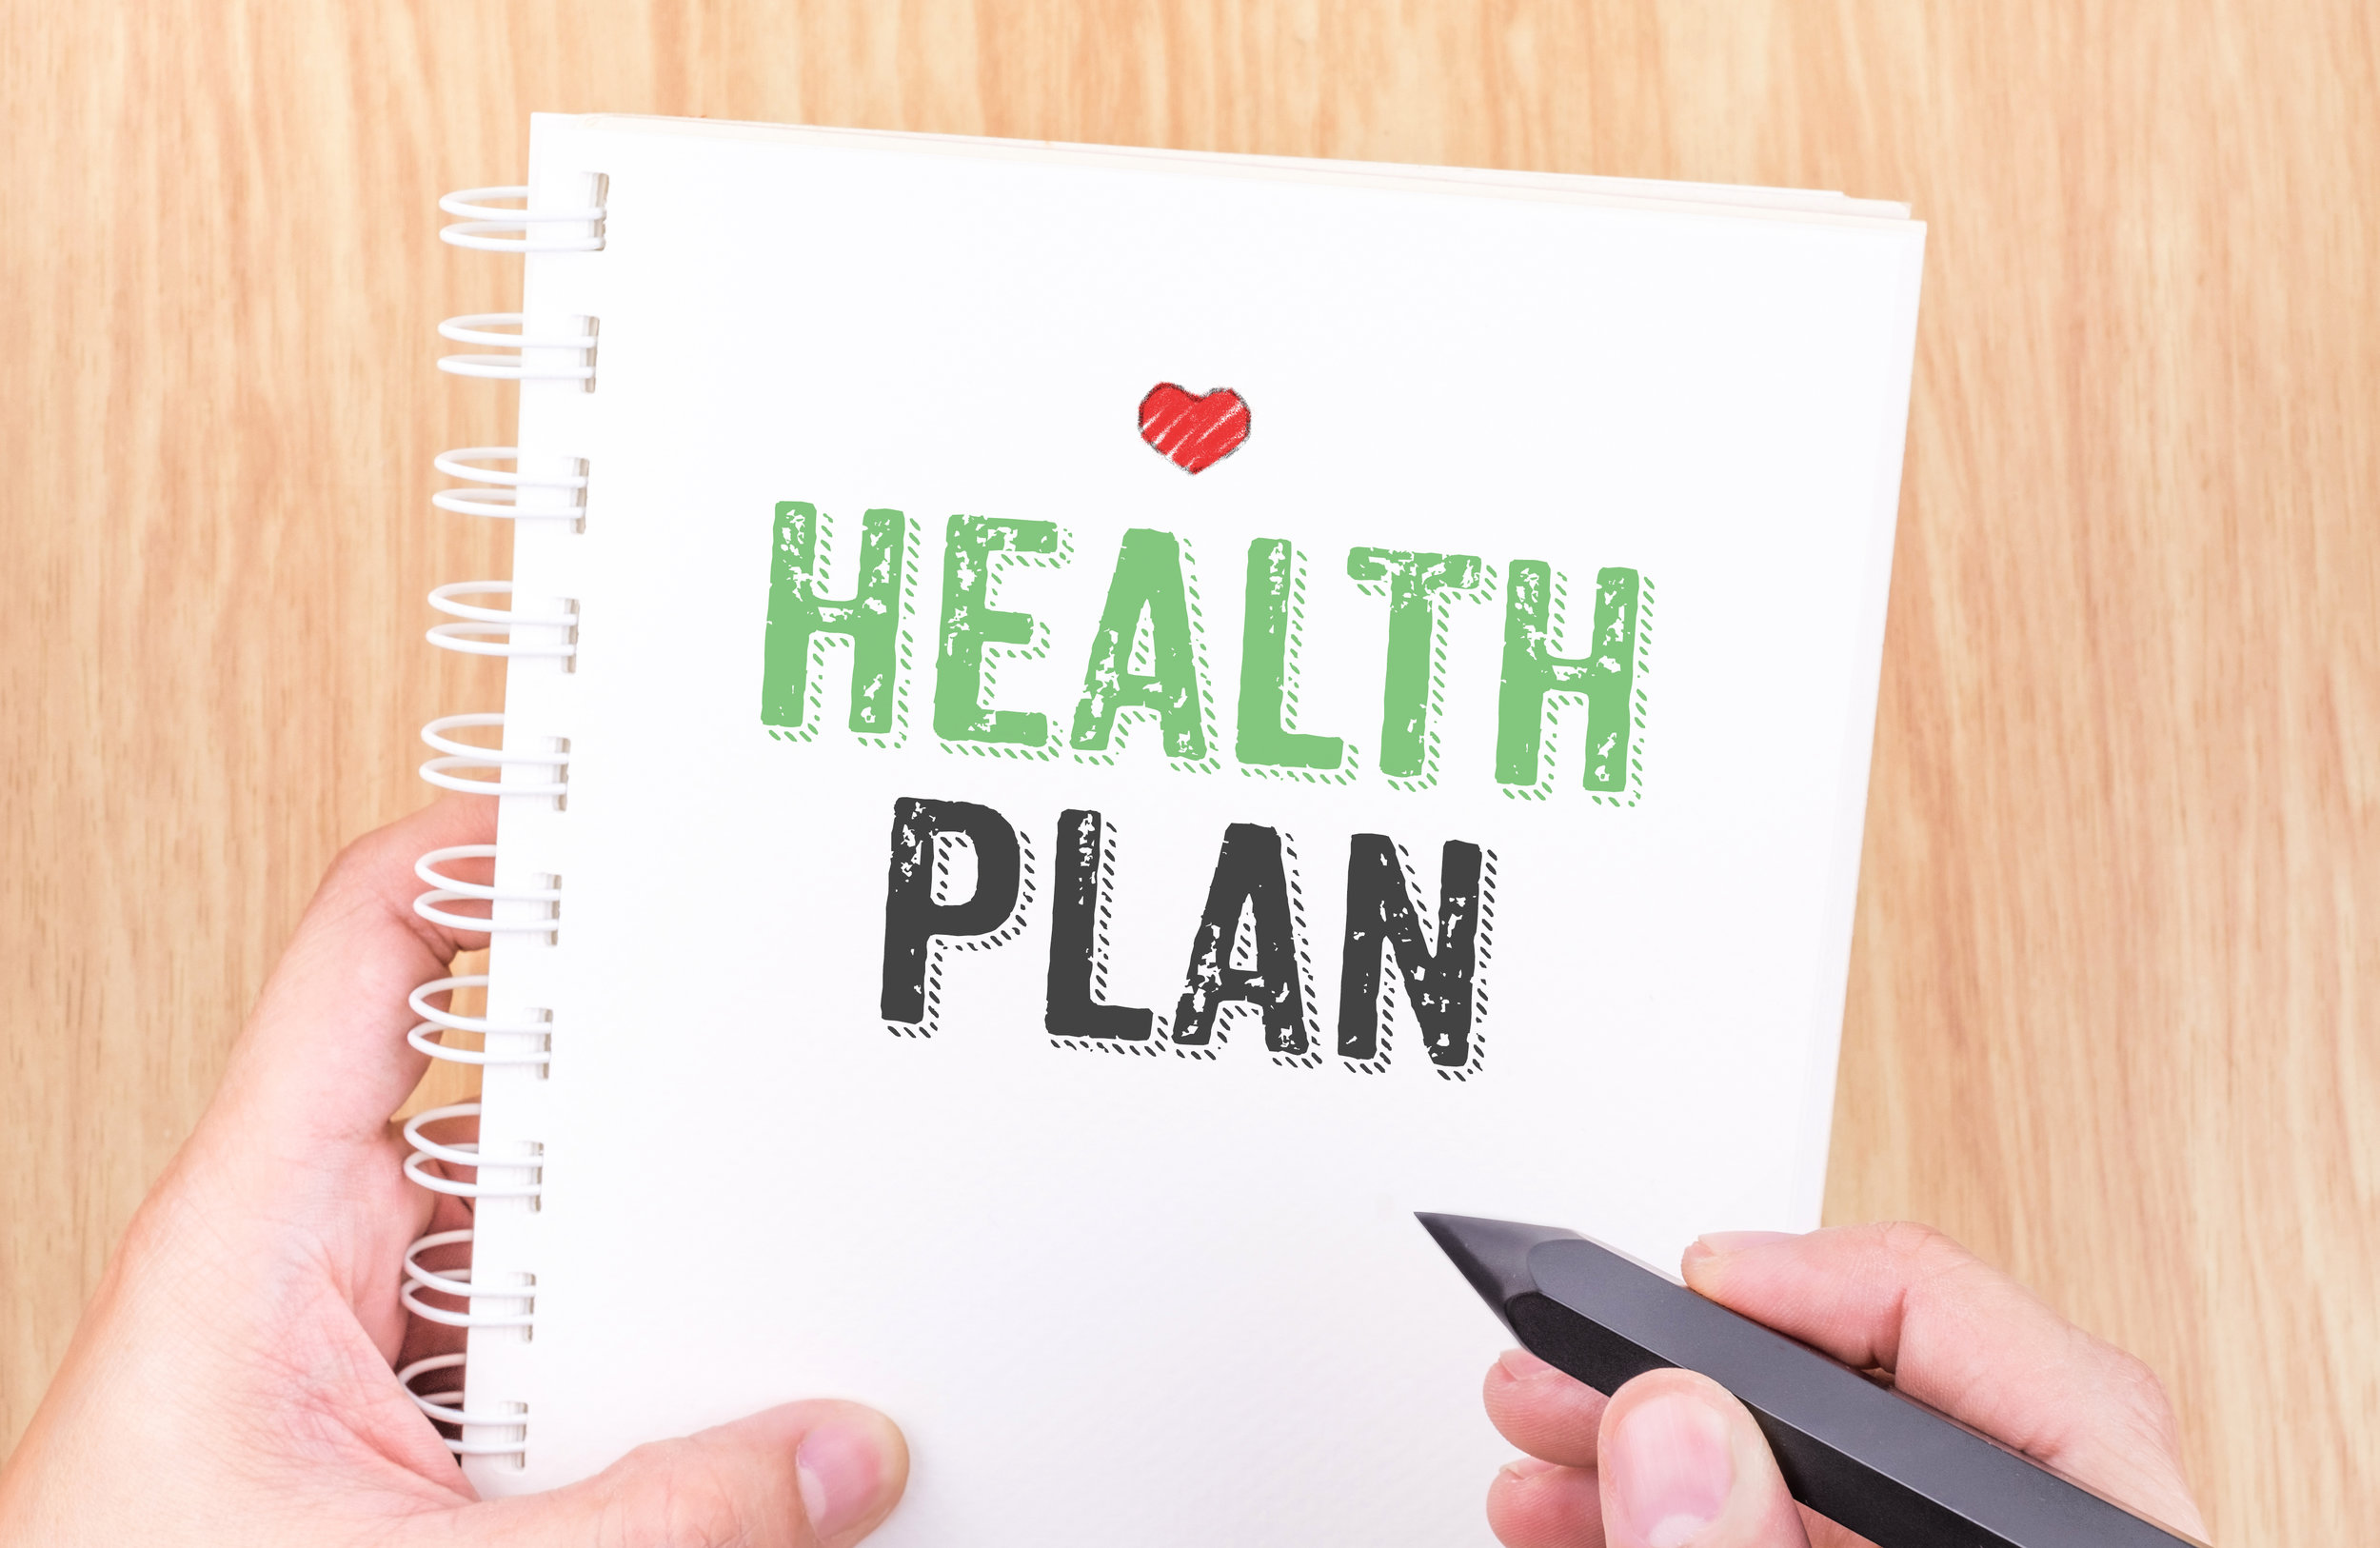 Daily Health Plan at the Holistic outpatient counseling center for drug and alcohol addiction, substance abuse and mental health counseling in Miami, Florida.